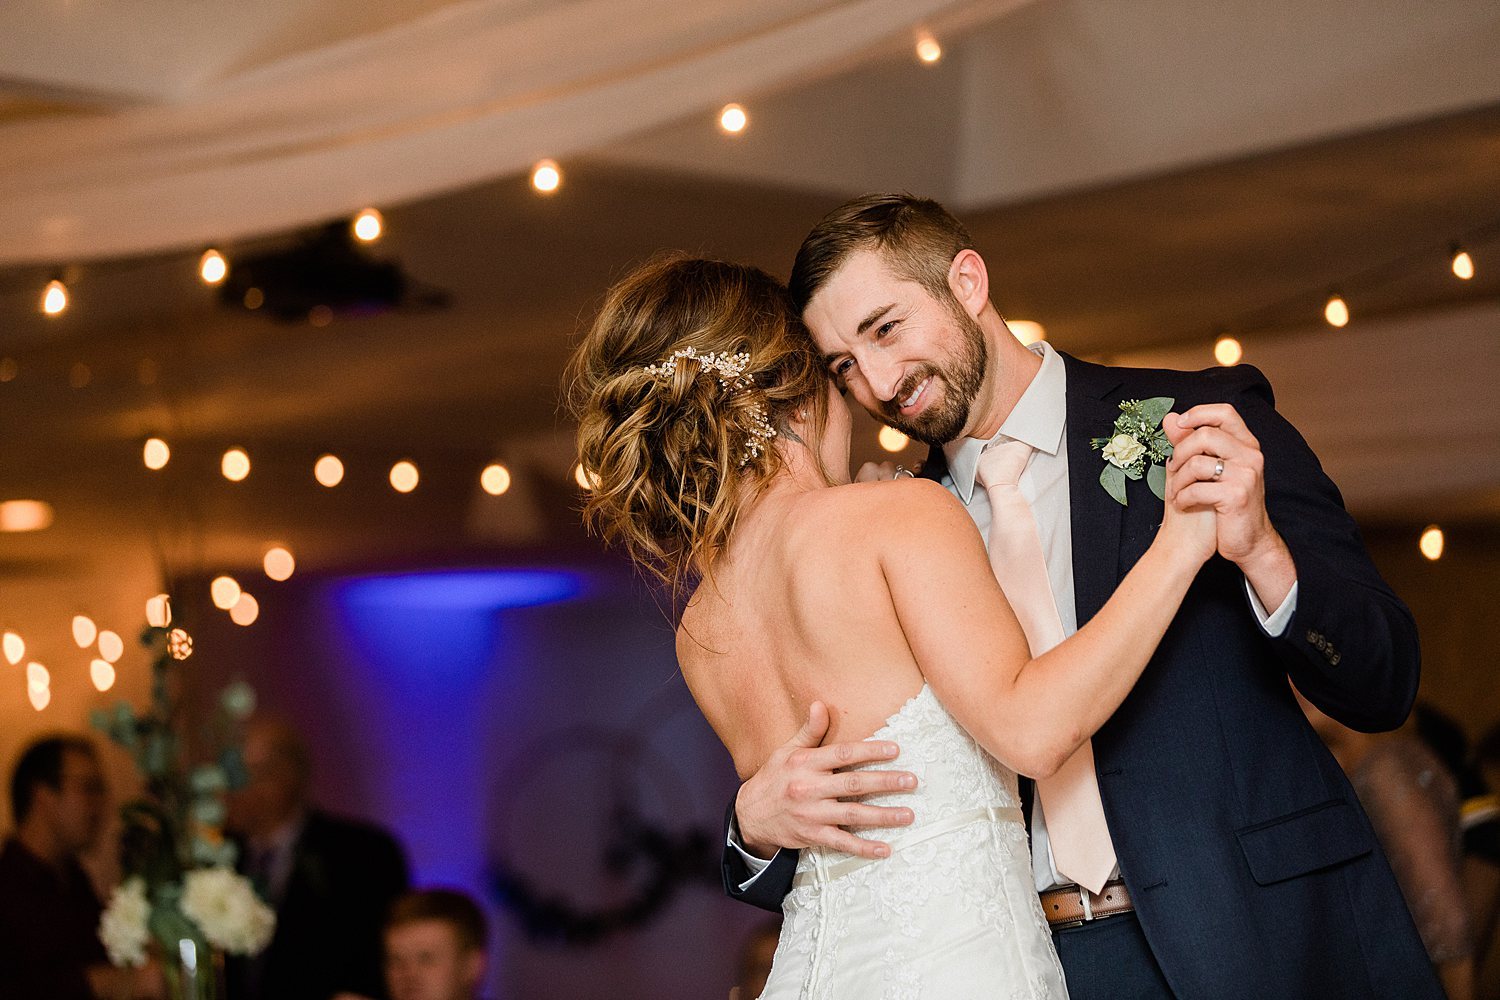 North_Central_Wisconsin_Event_Wedding_Venues_Fall_Weddings_The_Bailiwick_Venue_James-Stokes-Photography105.jpg